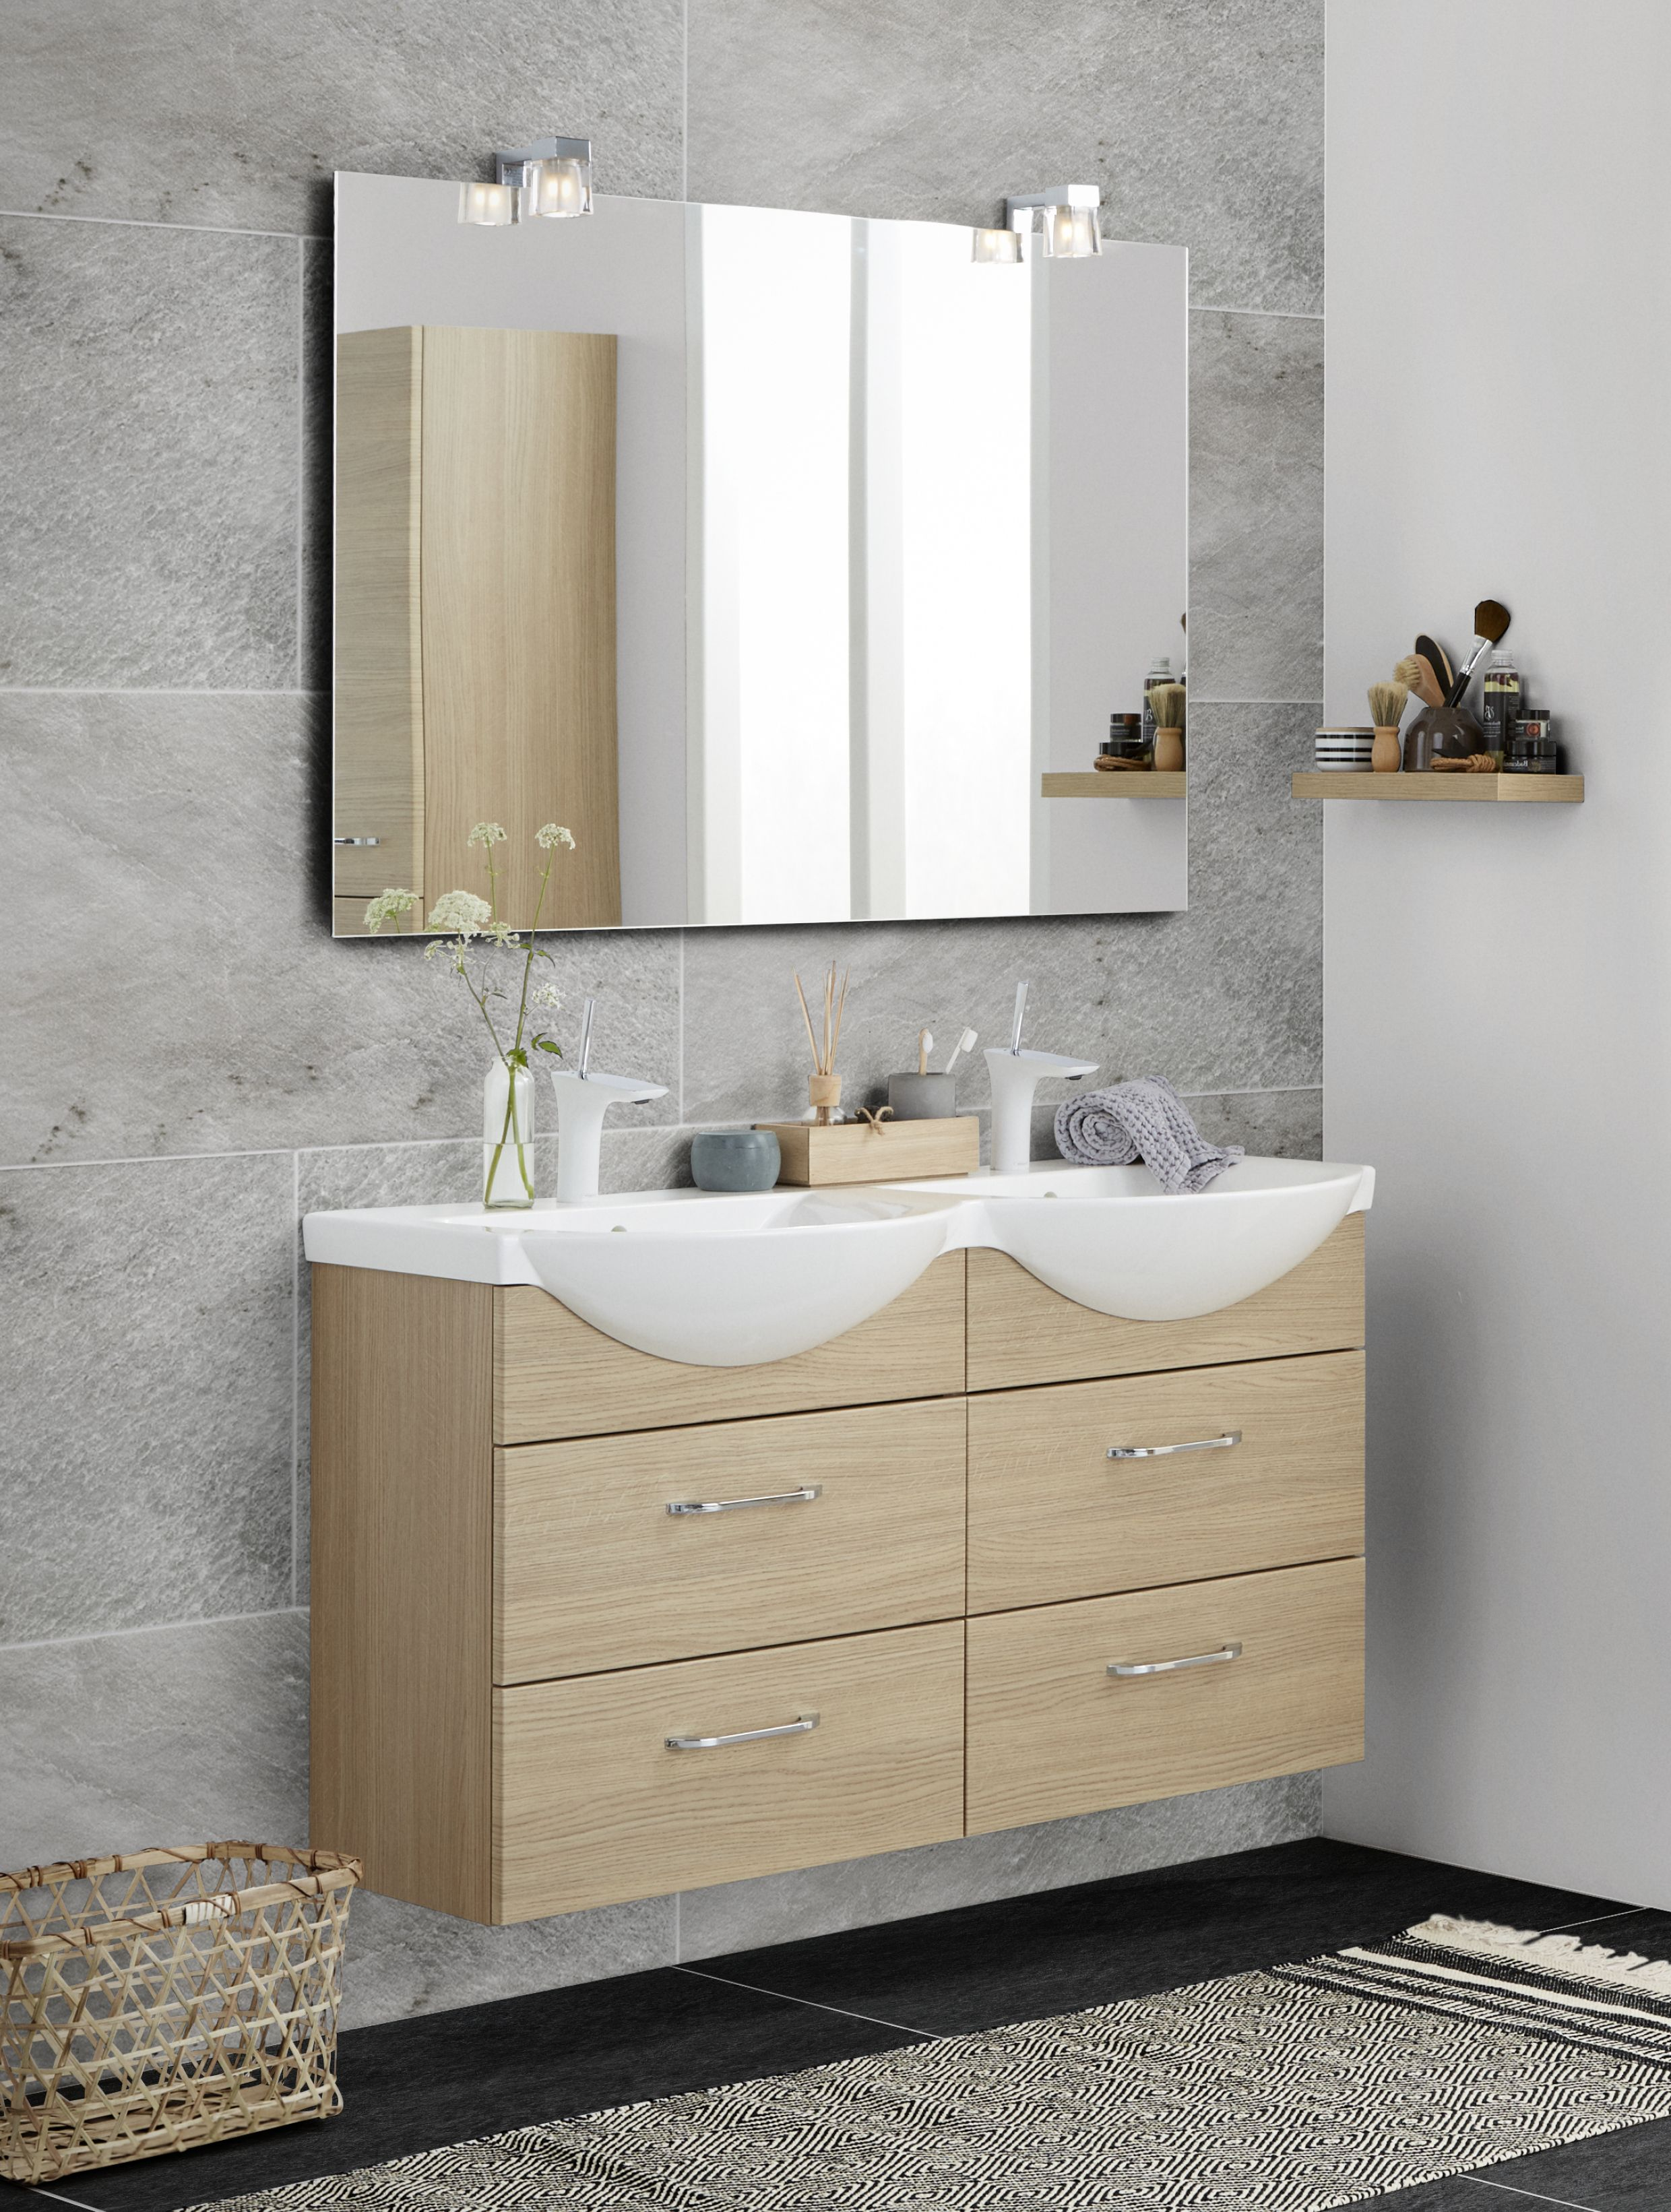 twin basin vivo in the small bathroom large mirror with kubus lights and floating shelf